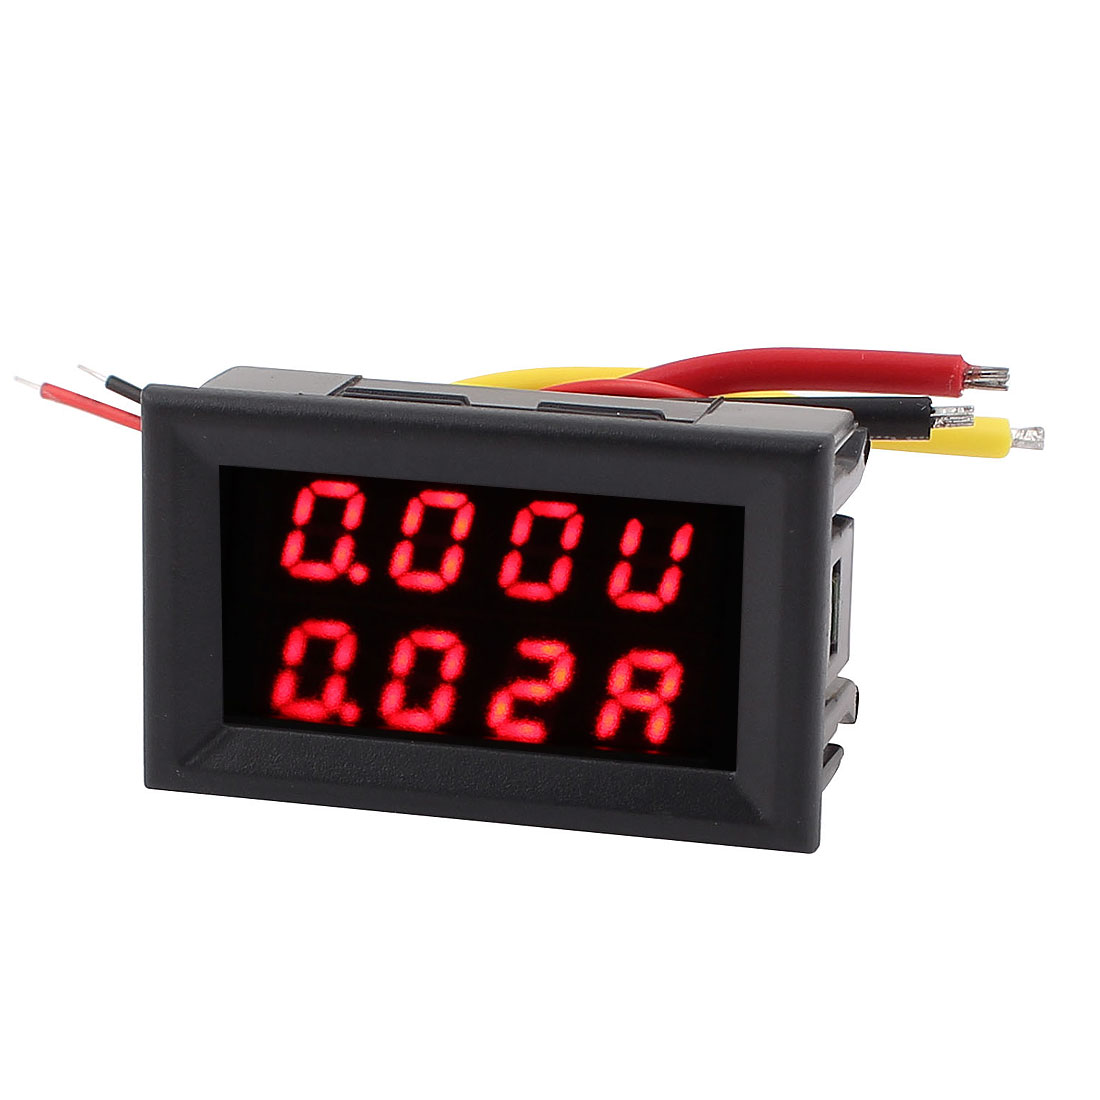 DC 0-300V 0-20A Dual LED Digital Mobile Battery Tester Voltage Current Meter